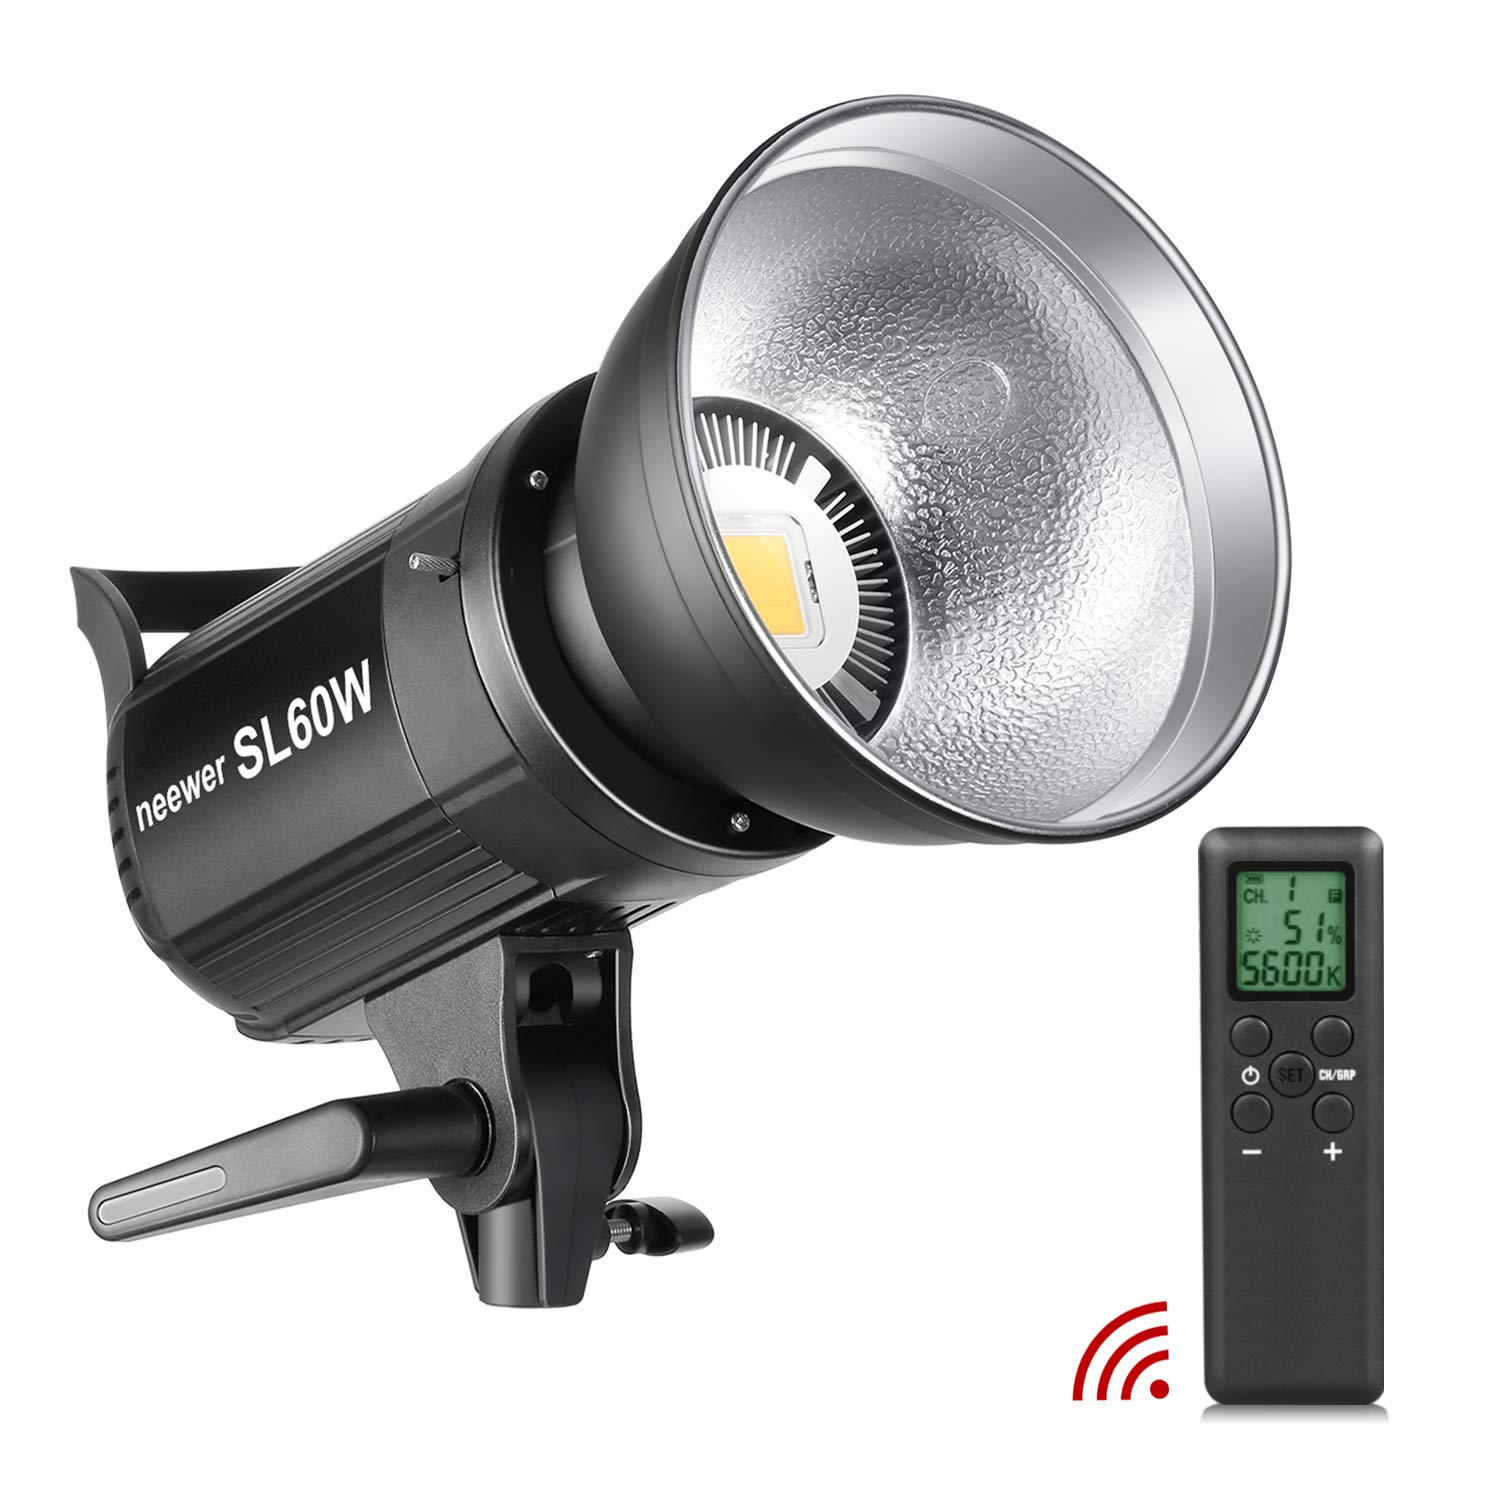 Neewer SL-60W LED Video Light White 5600K Version, 60W CRI 95+, TLCI 90+ with Remote Control and Reflector, Continuous Lighting Bowens Mount for Video Recording, Children Photography, Outdoor Shooting by Neewer